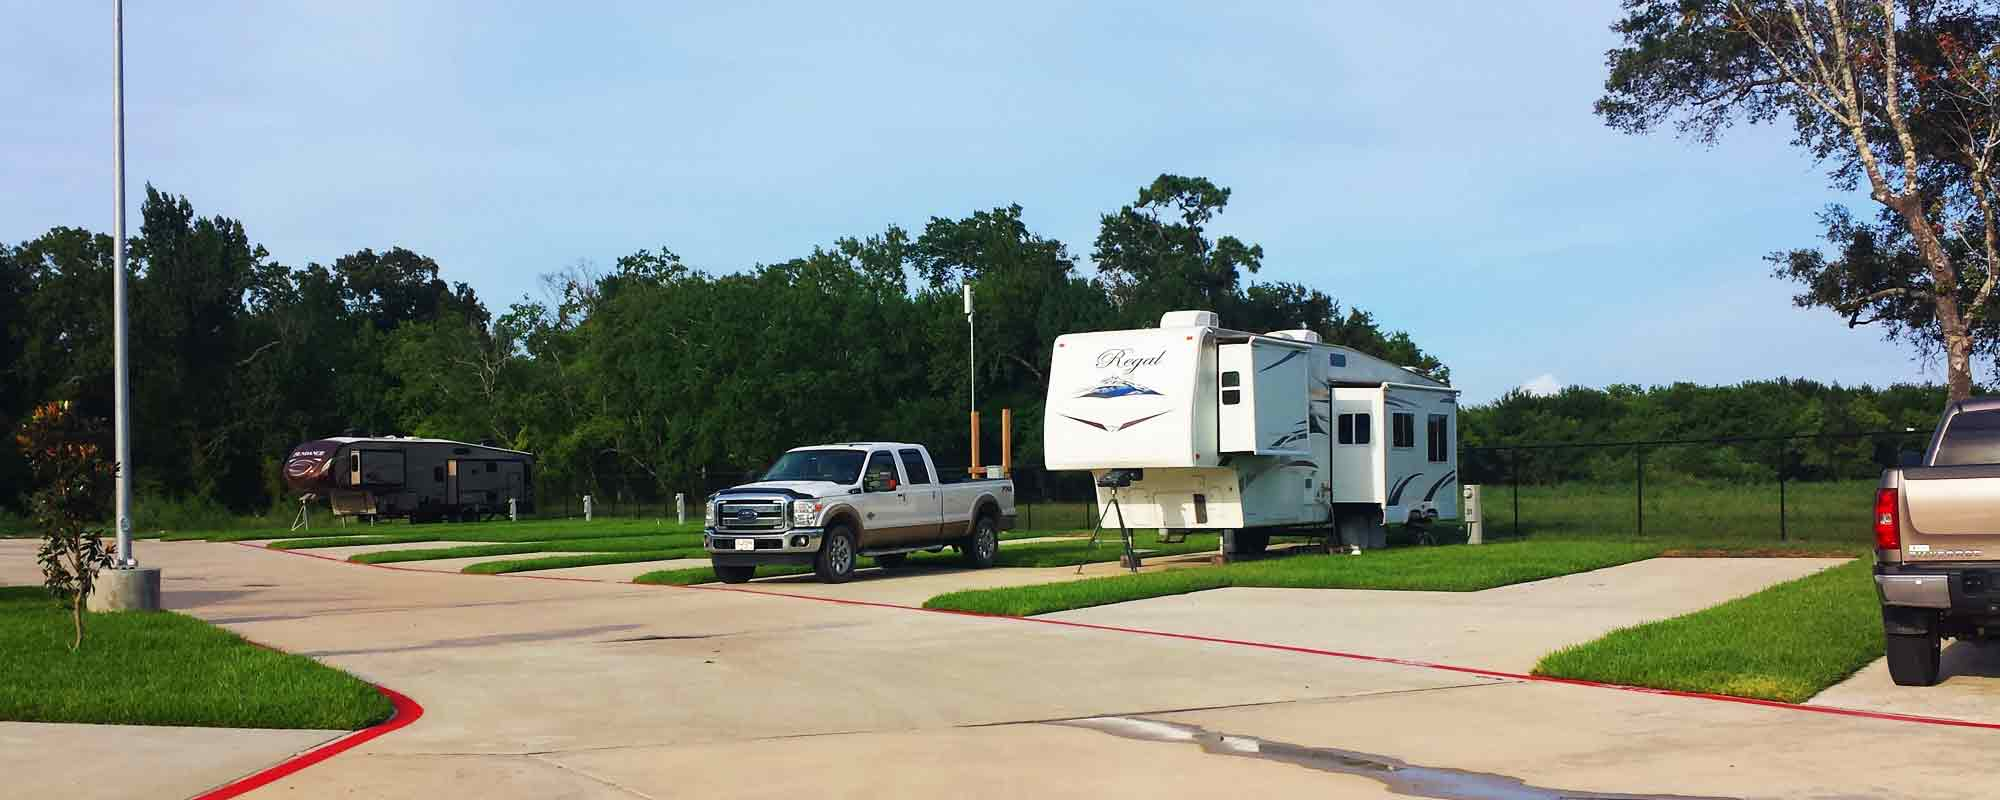 Bayou bend RV Resort in Baytown, TX